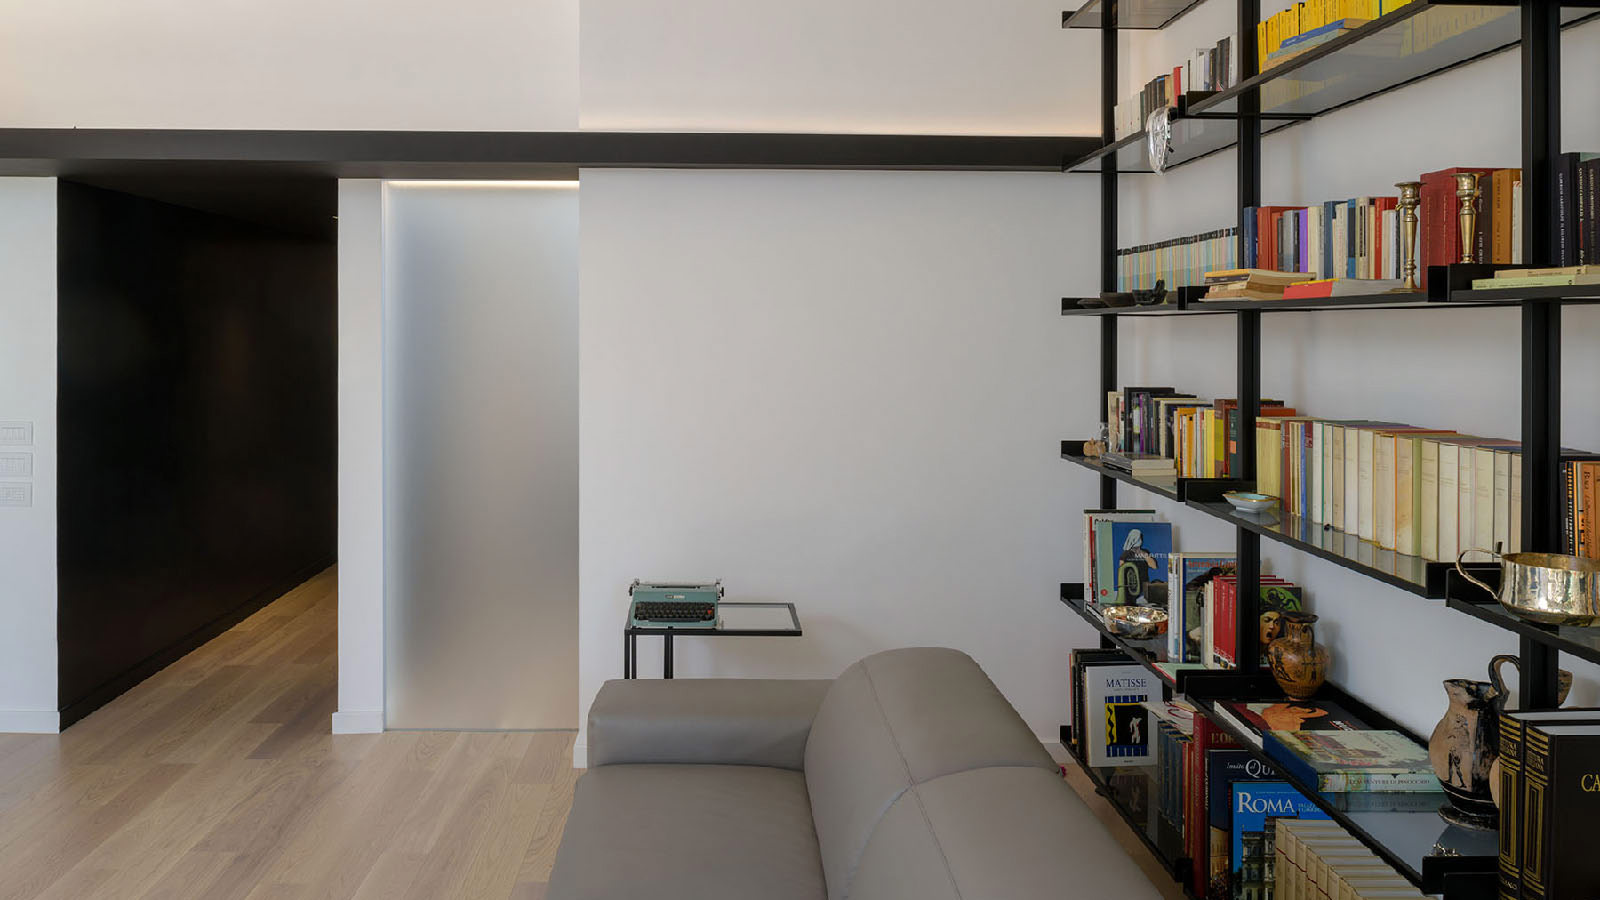 Porcelanosa Group Projects: a complete renovation in a single-family home in Rome